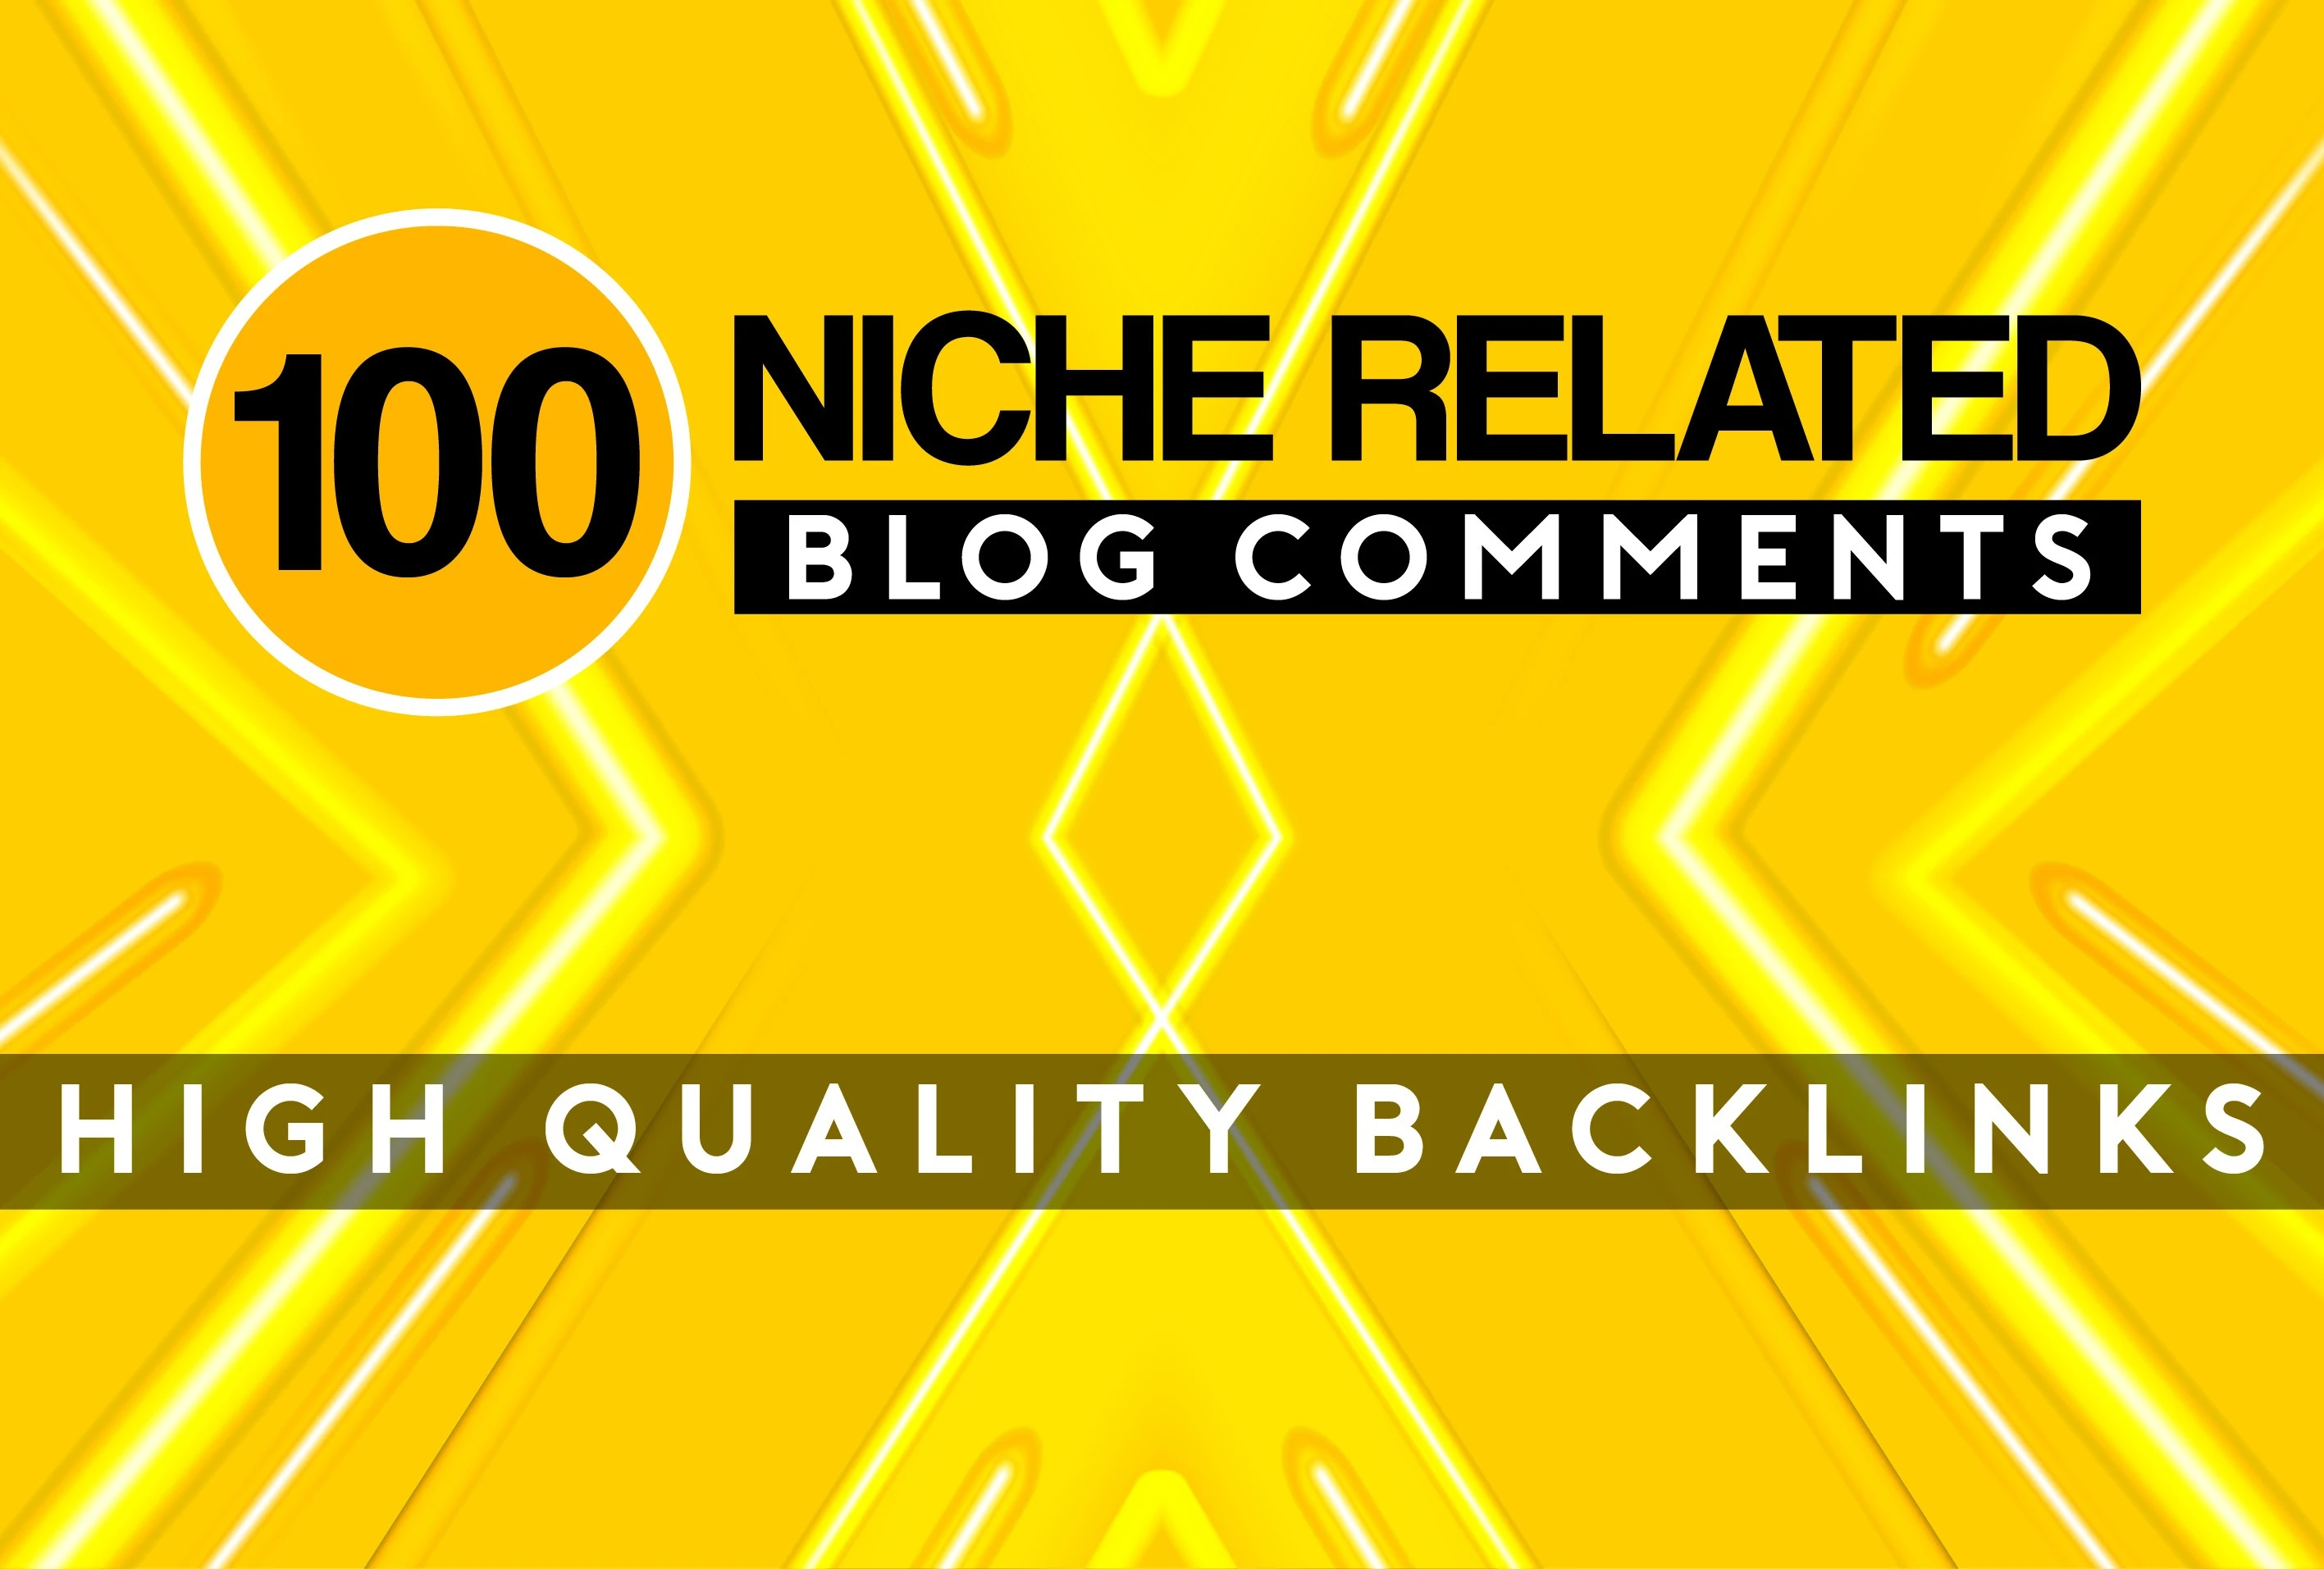 Provide 100 Market Niche Relevant Blog Comment High Quality